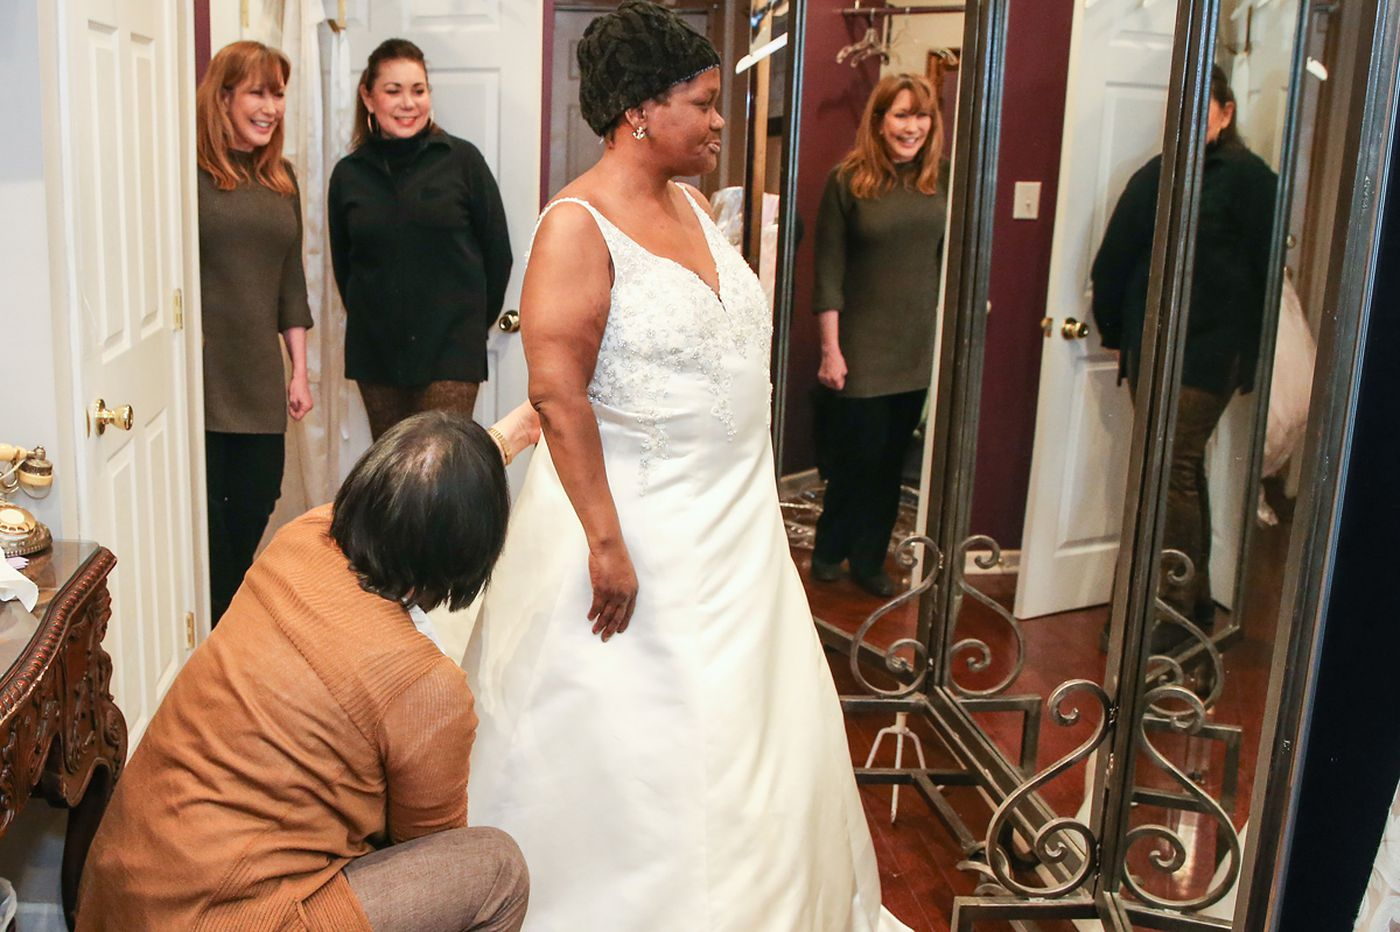 Good Samaritans plan a wedding for a homeless couple